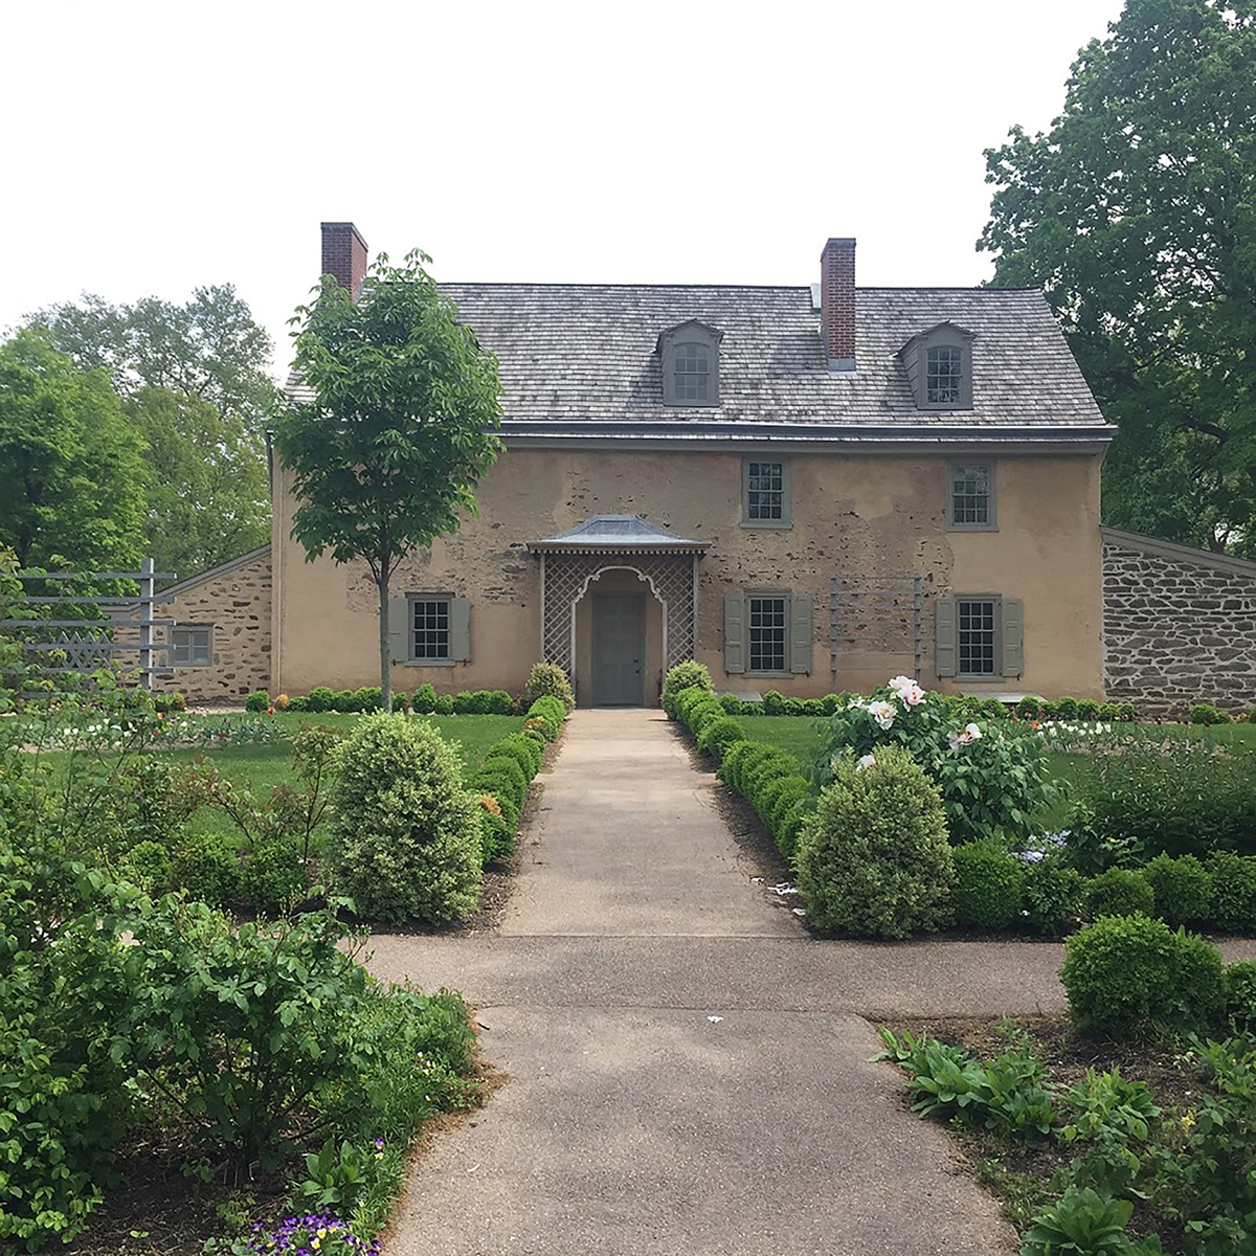 View of a historic home with gardens